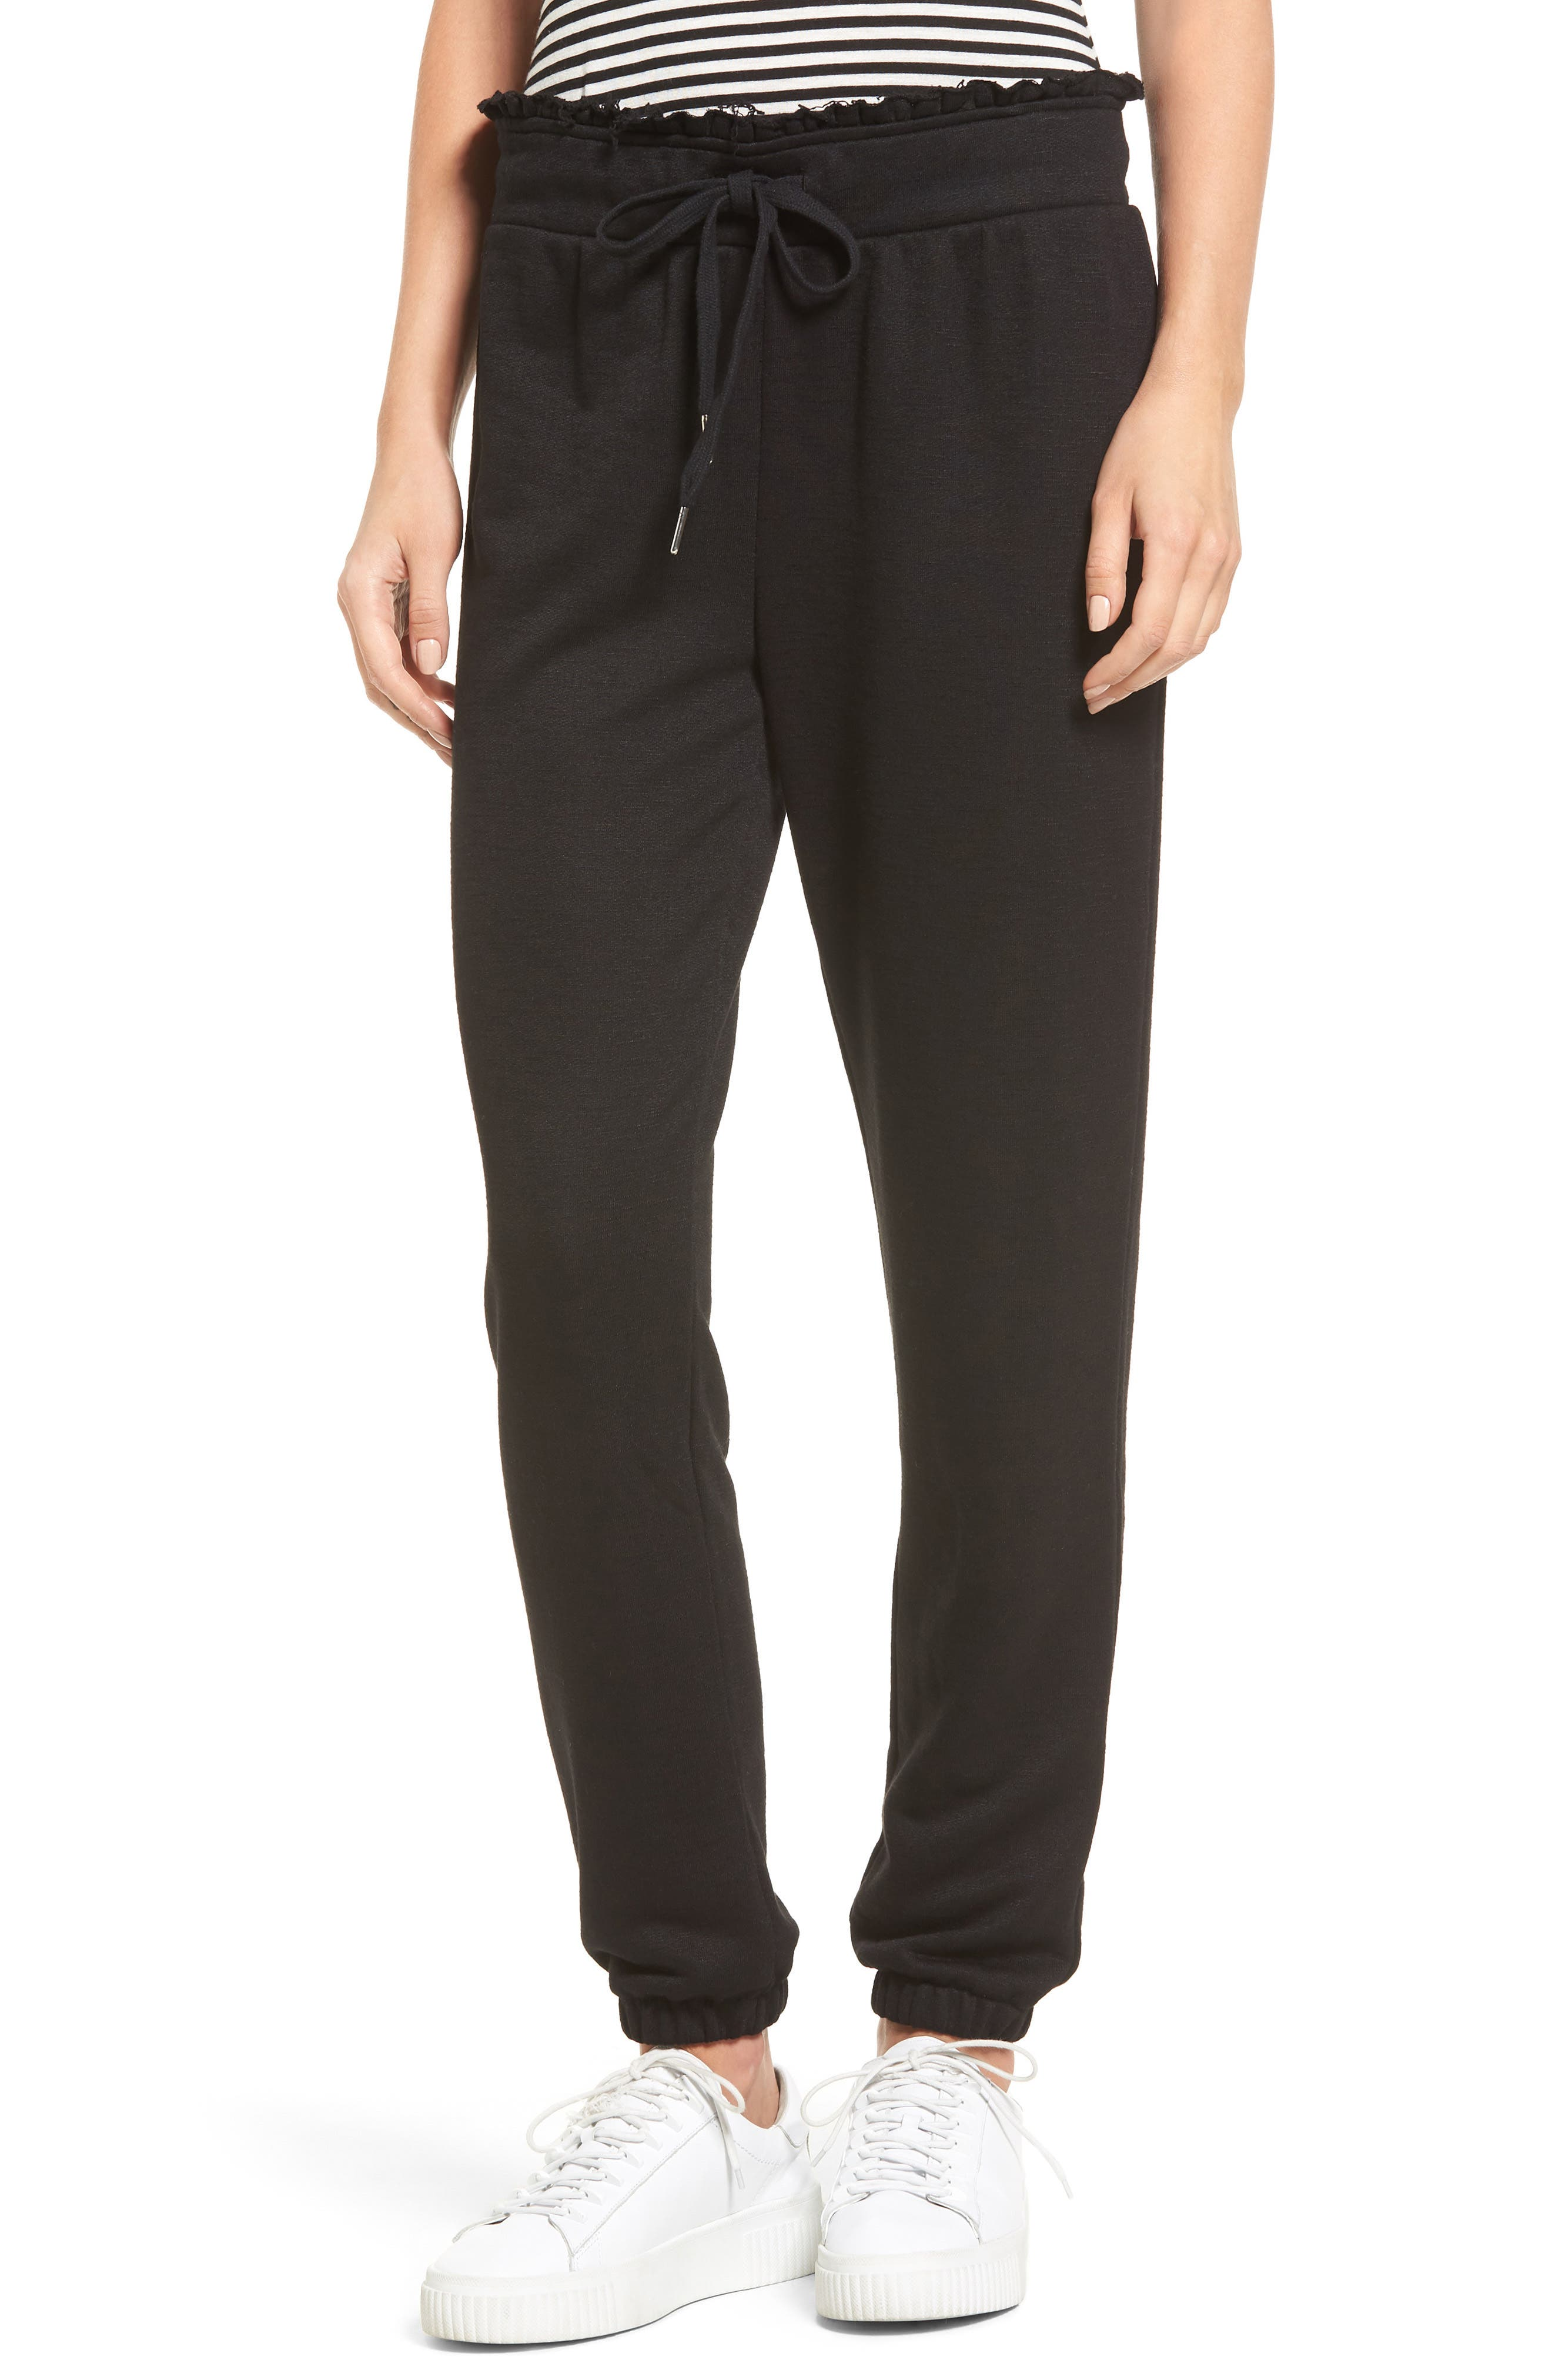 Socialite Raw Edge Sweatpants